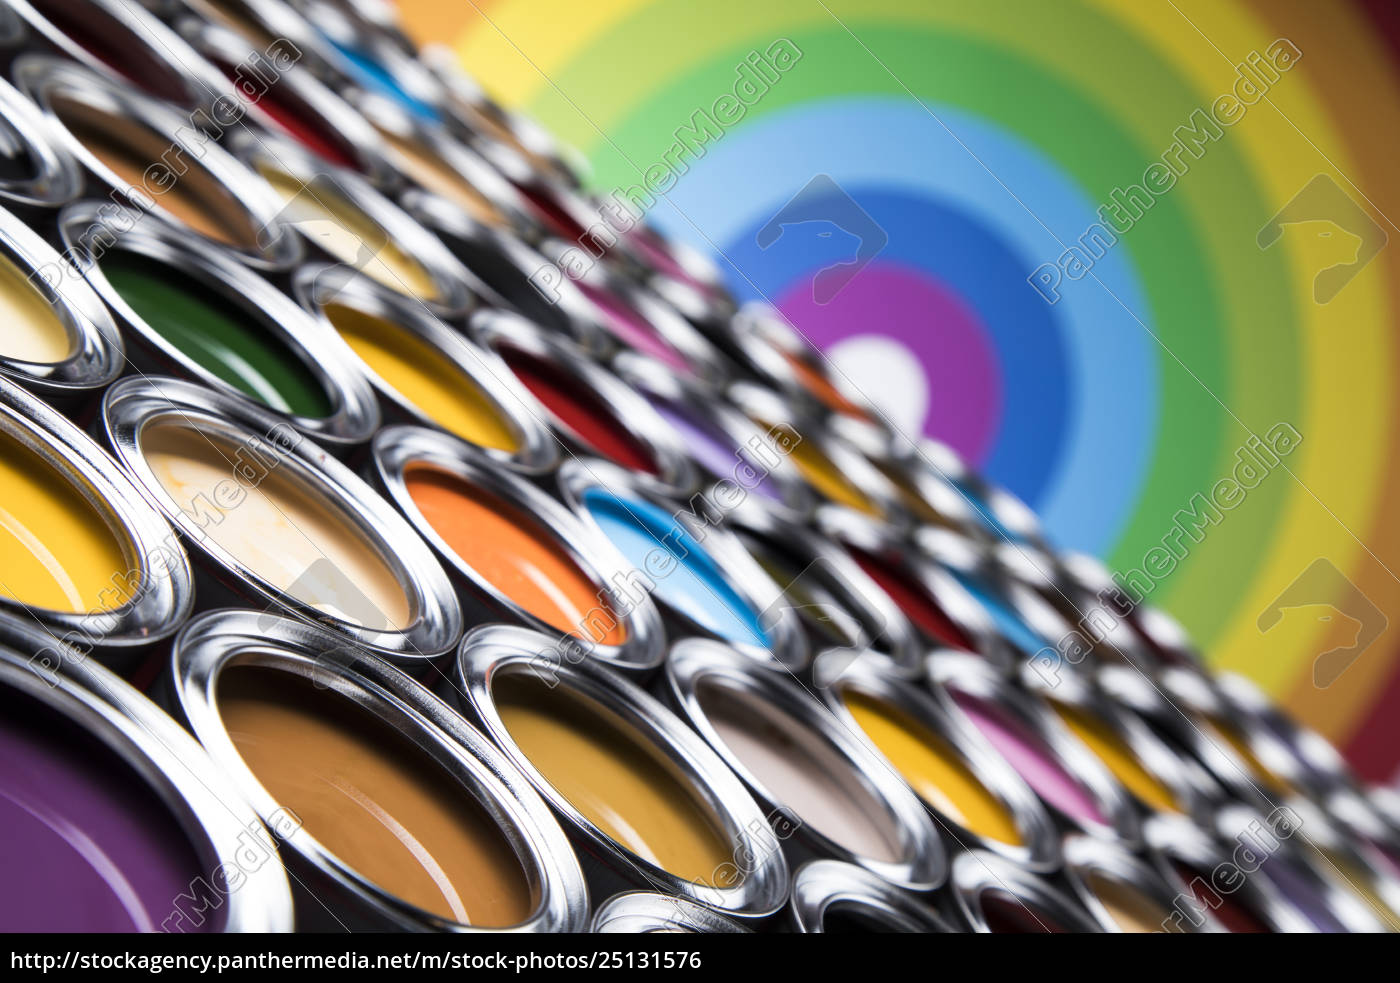 rainbow, , tin, metal, cans, with, color - 25131576